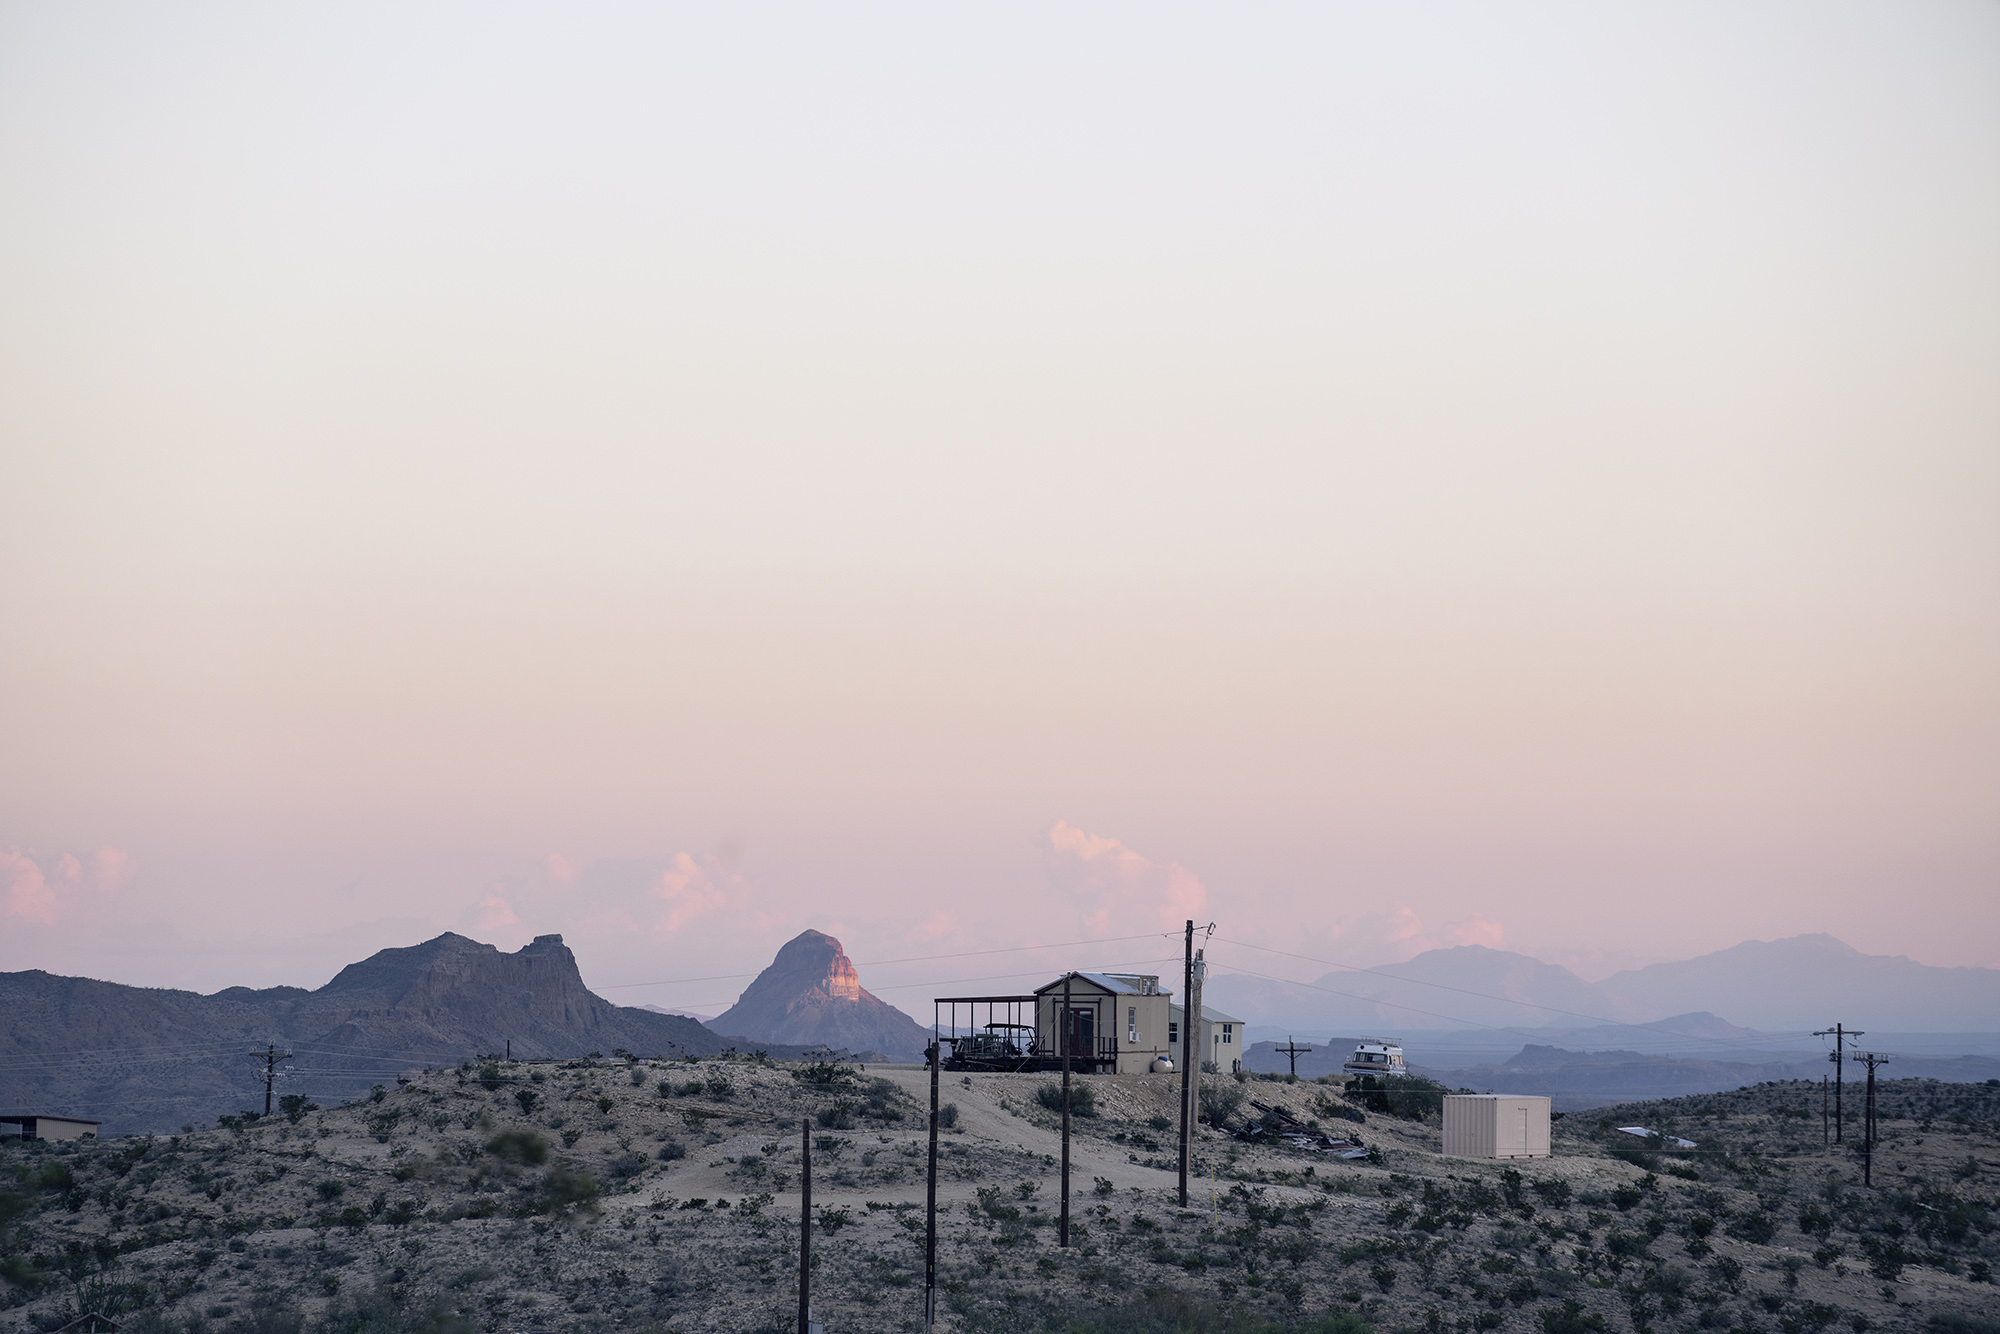 Sunset_Terlingua